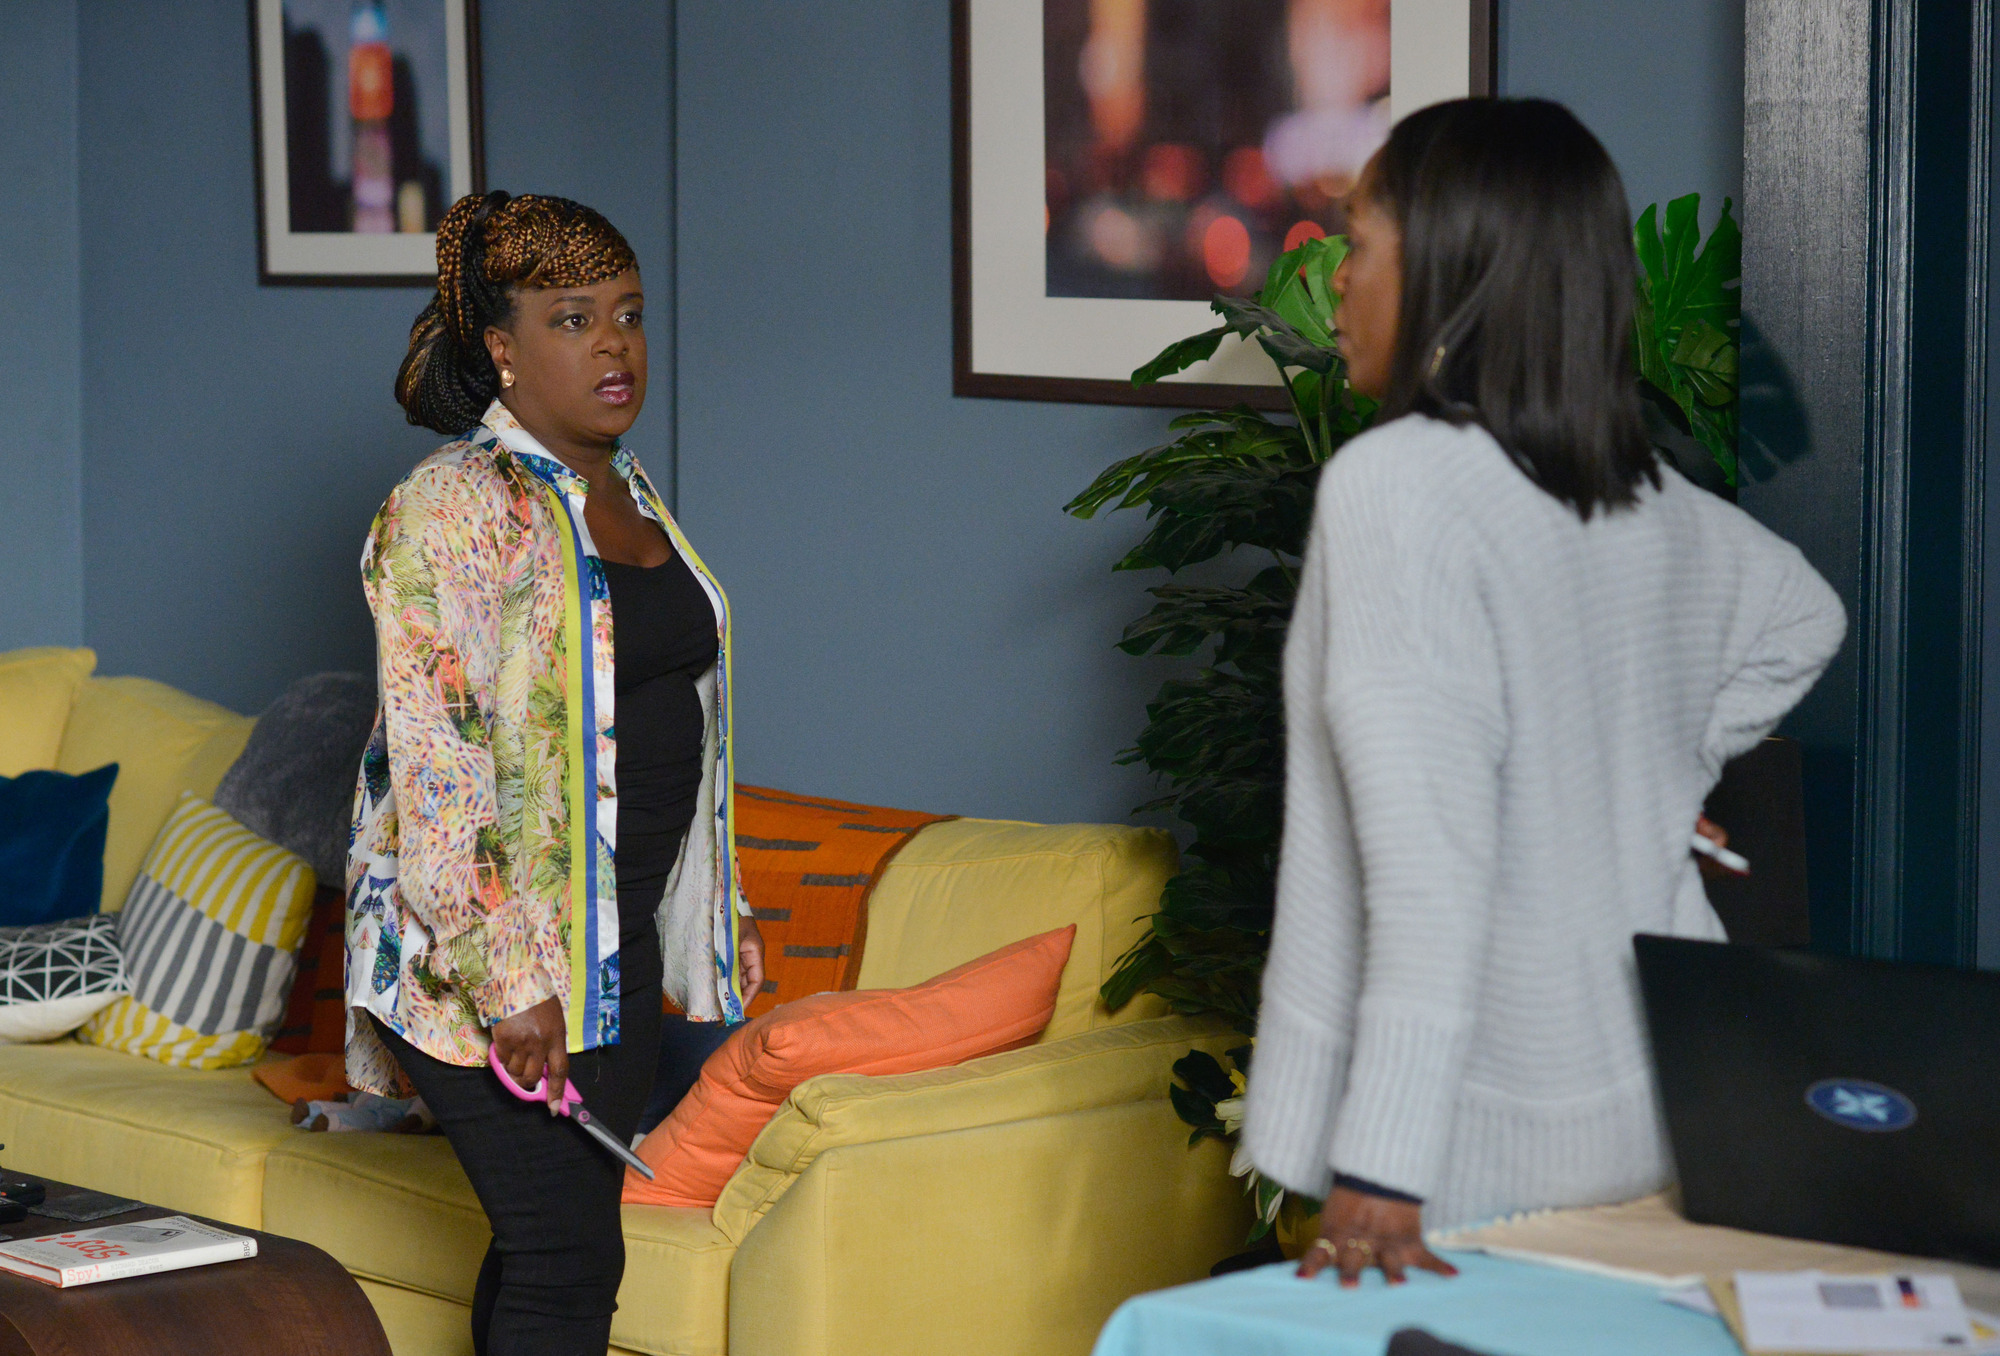 EastEnders: Kim Fox and Denise Fox sisters? How are they